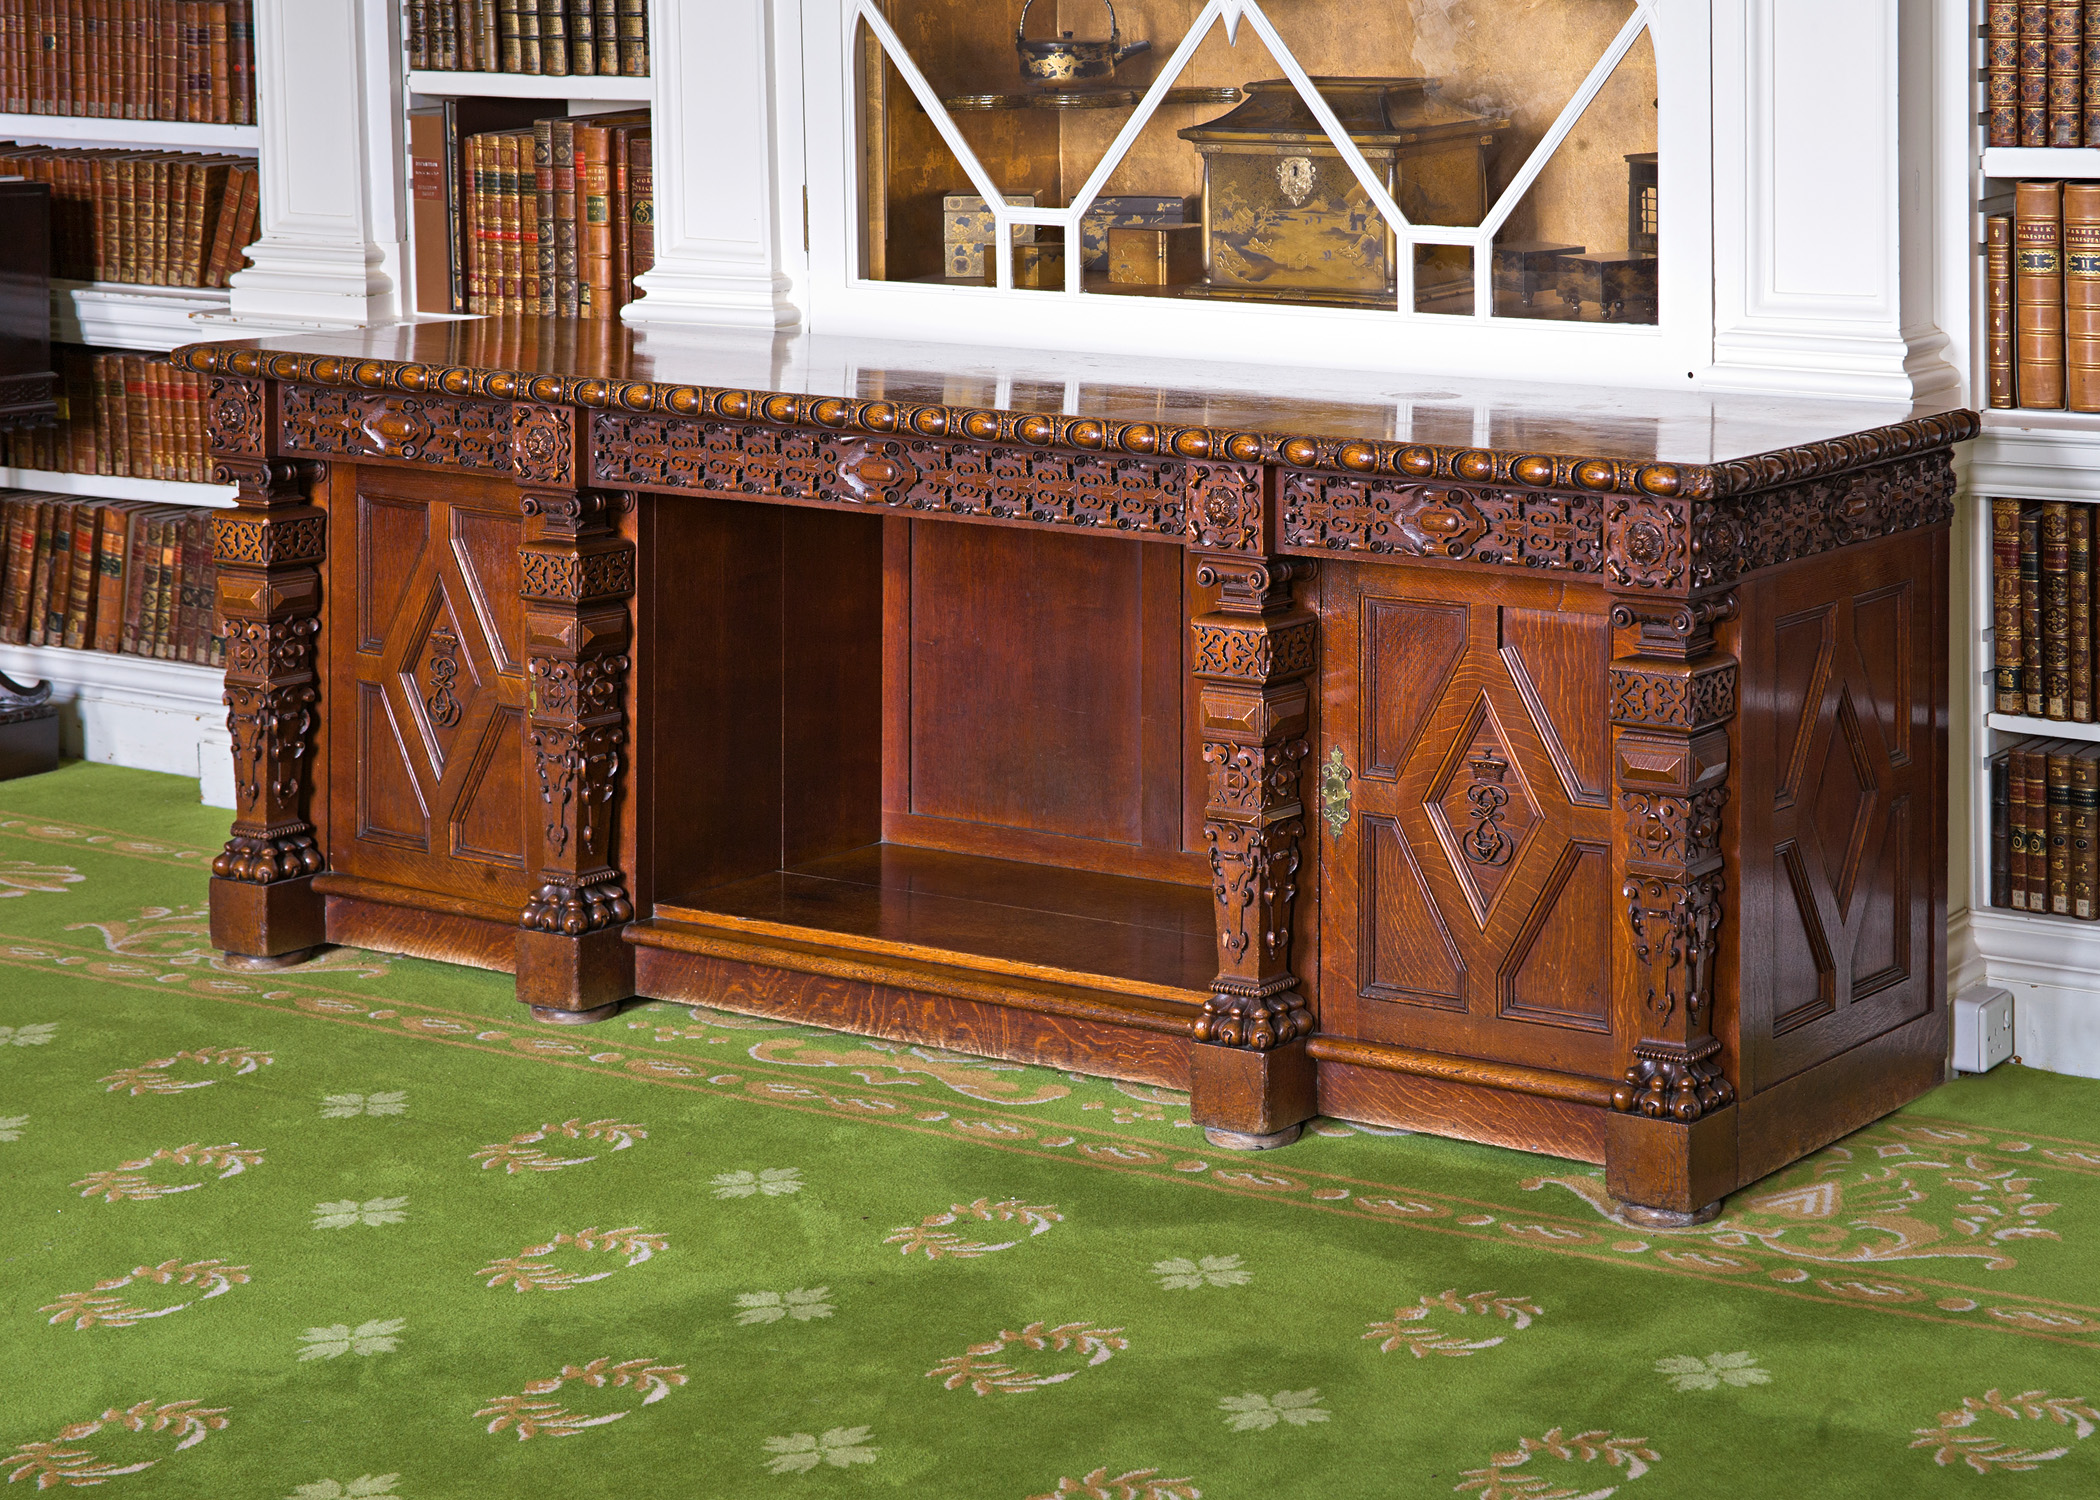 A 19th Century Elizabethan revival oak sideboard, circa 1840.